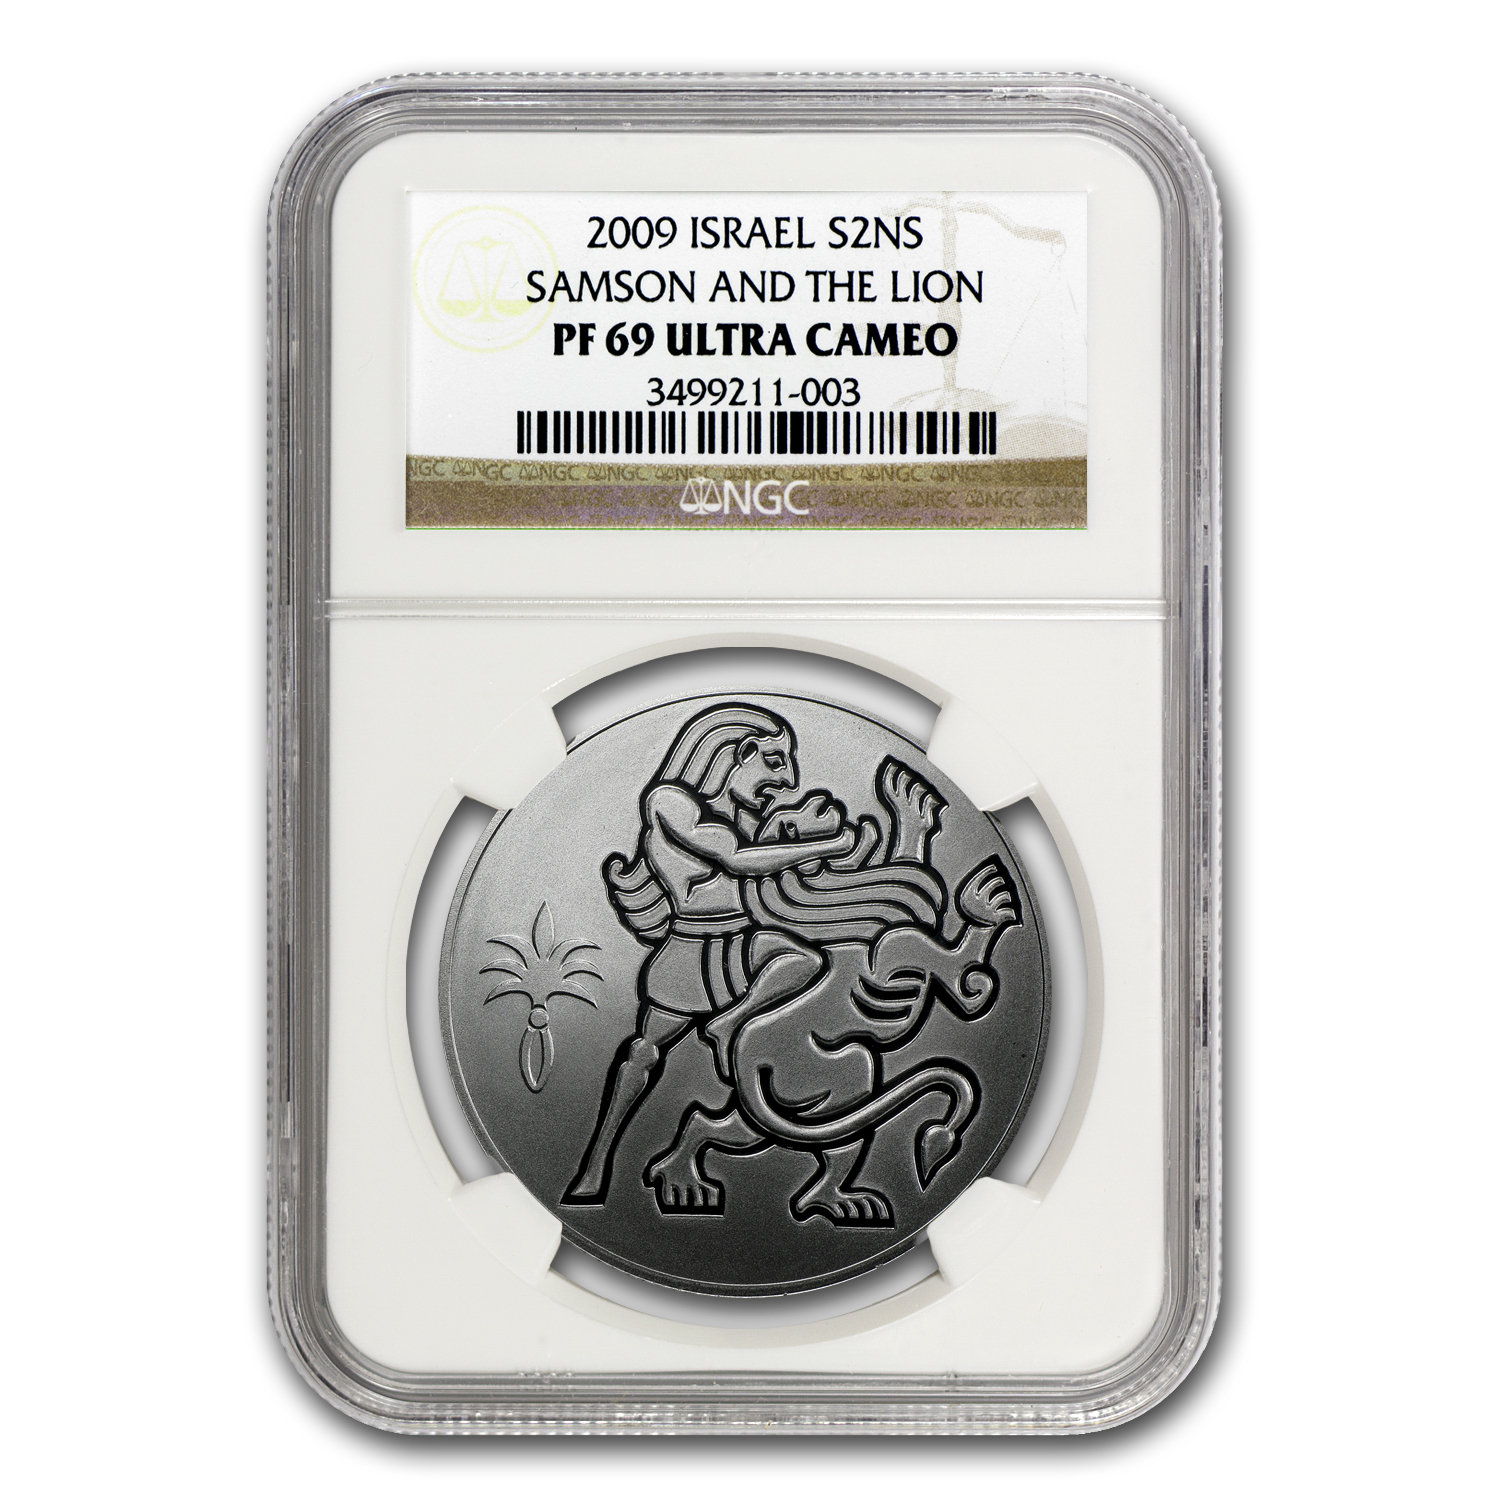 2009 Israel Silver 2 NIS Samson and the Lion PF-69 NGC